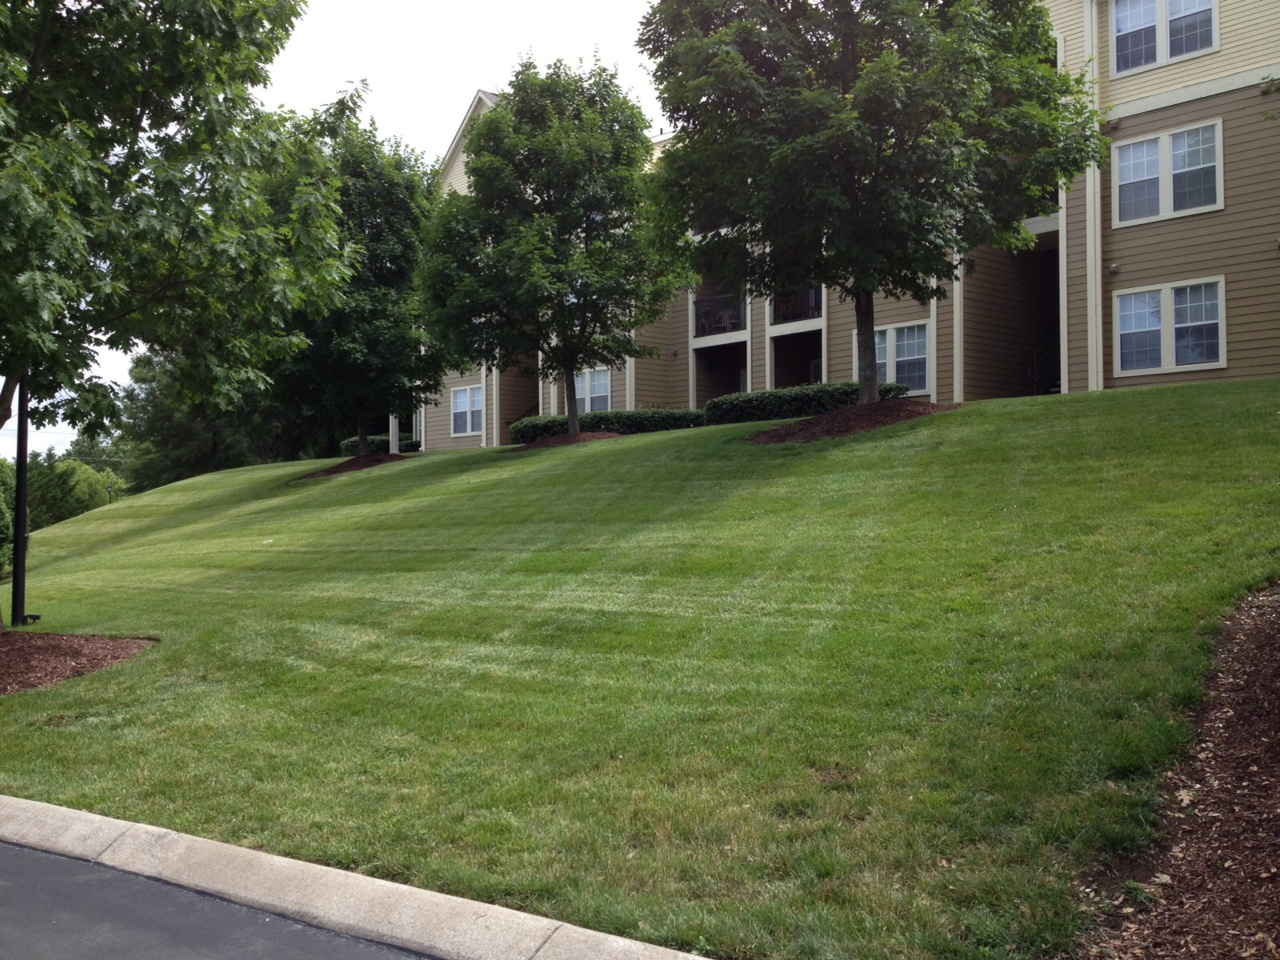 Lawns Need to Be Watered Regularly in the Summer